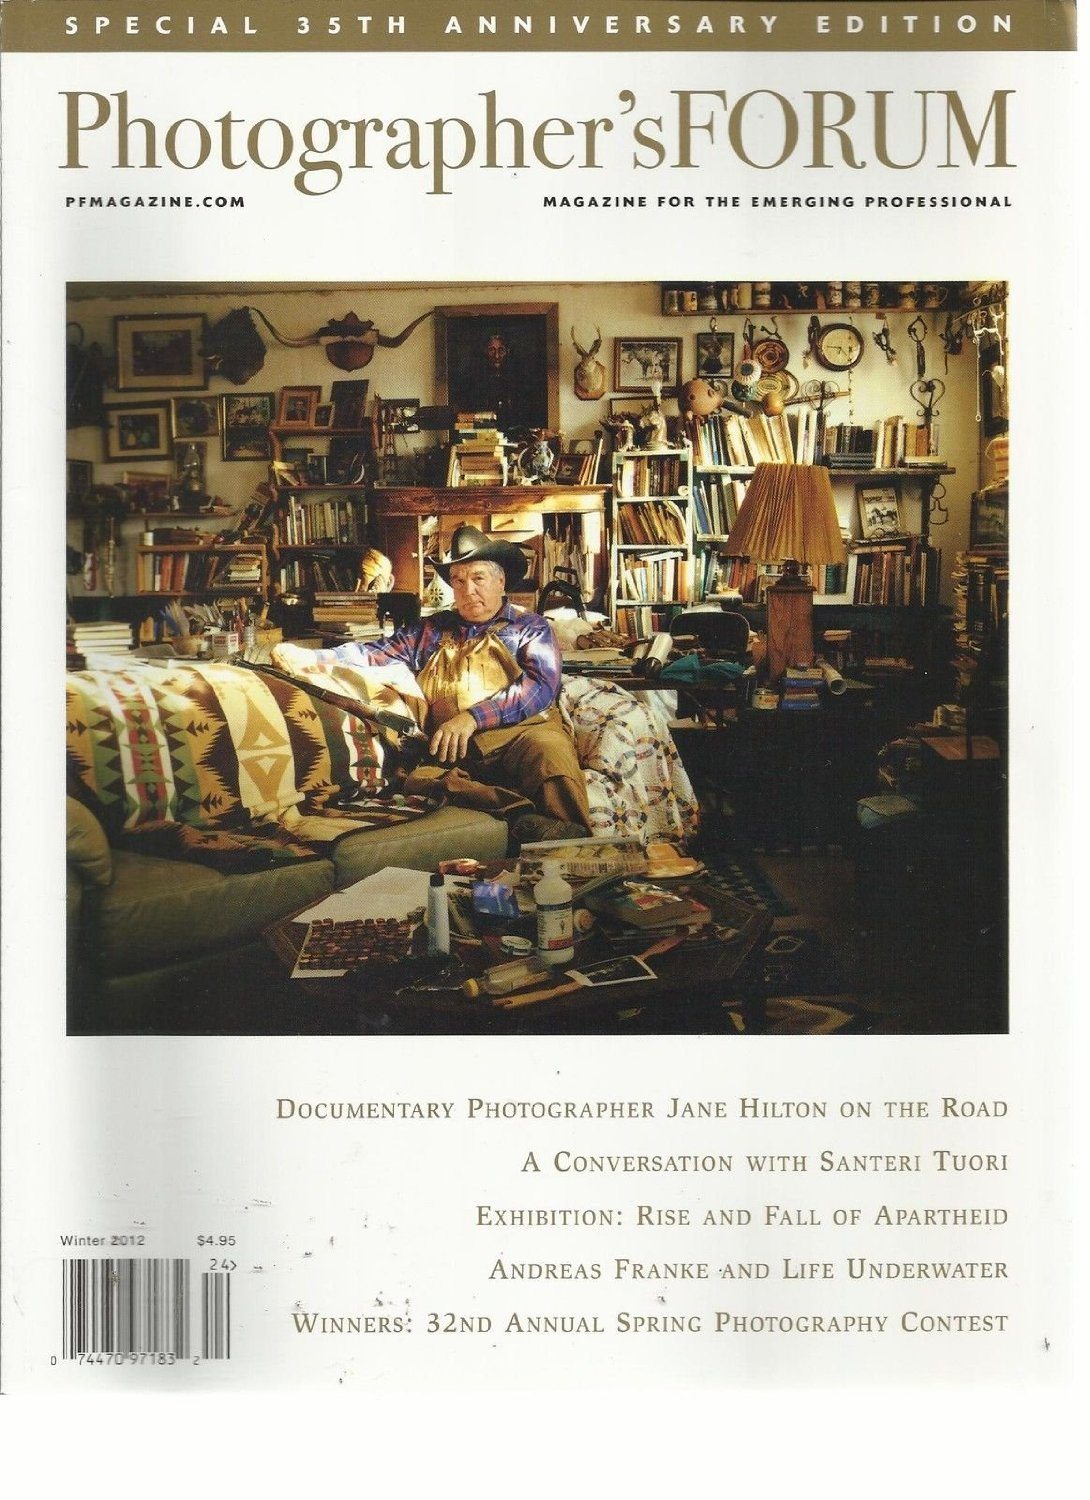 PHOTOGRAPHER'S FORUM, WINTER, 2012 ( MAGAZINE FOR THE EMERGING PROFESSIONAL )